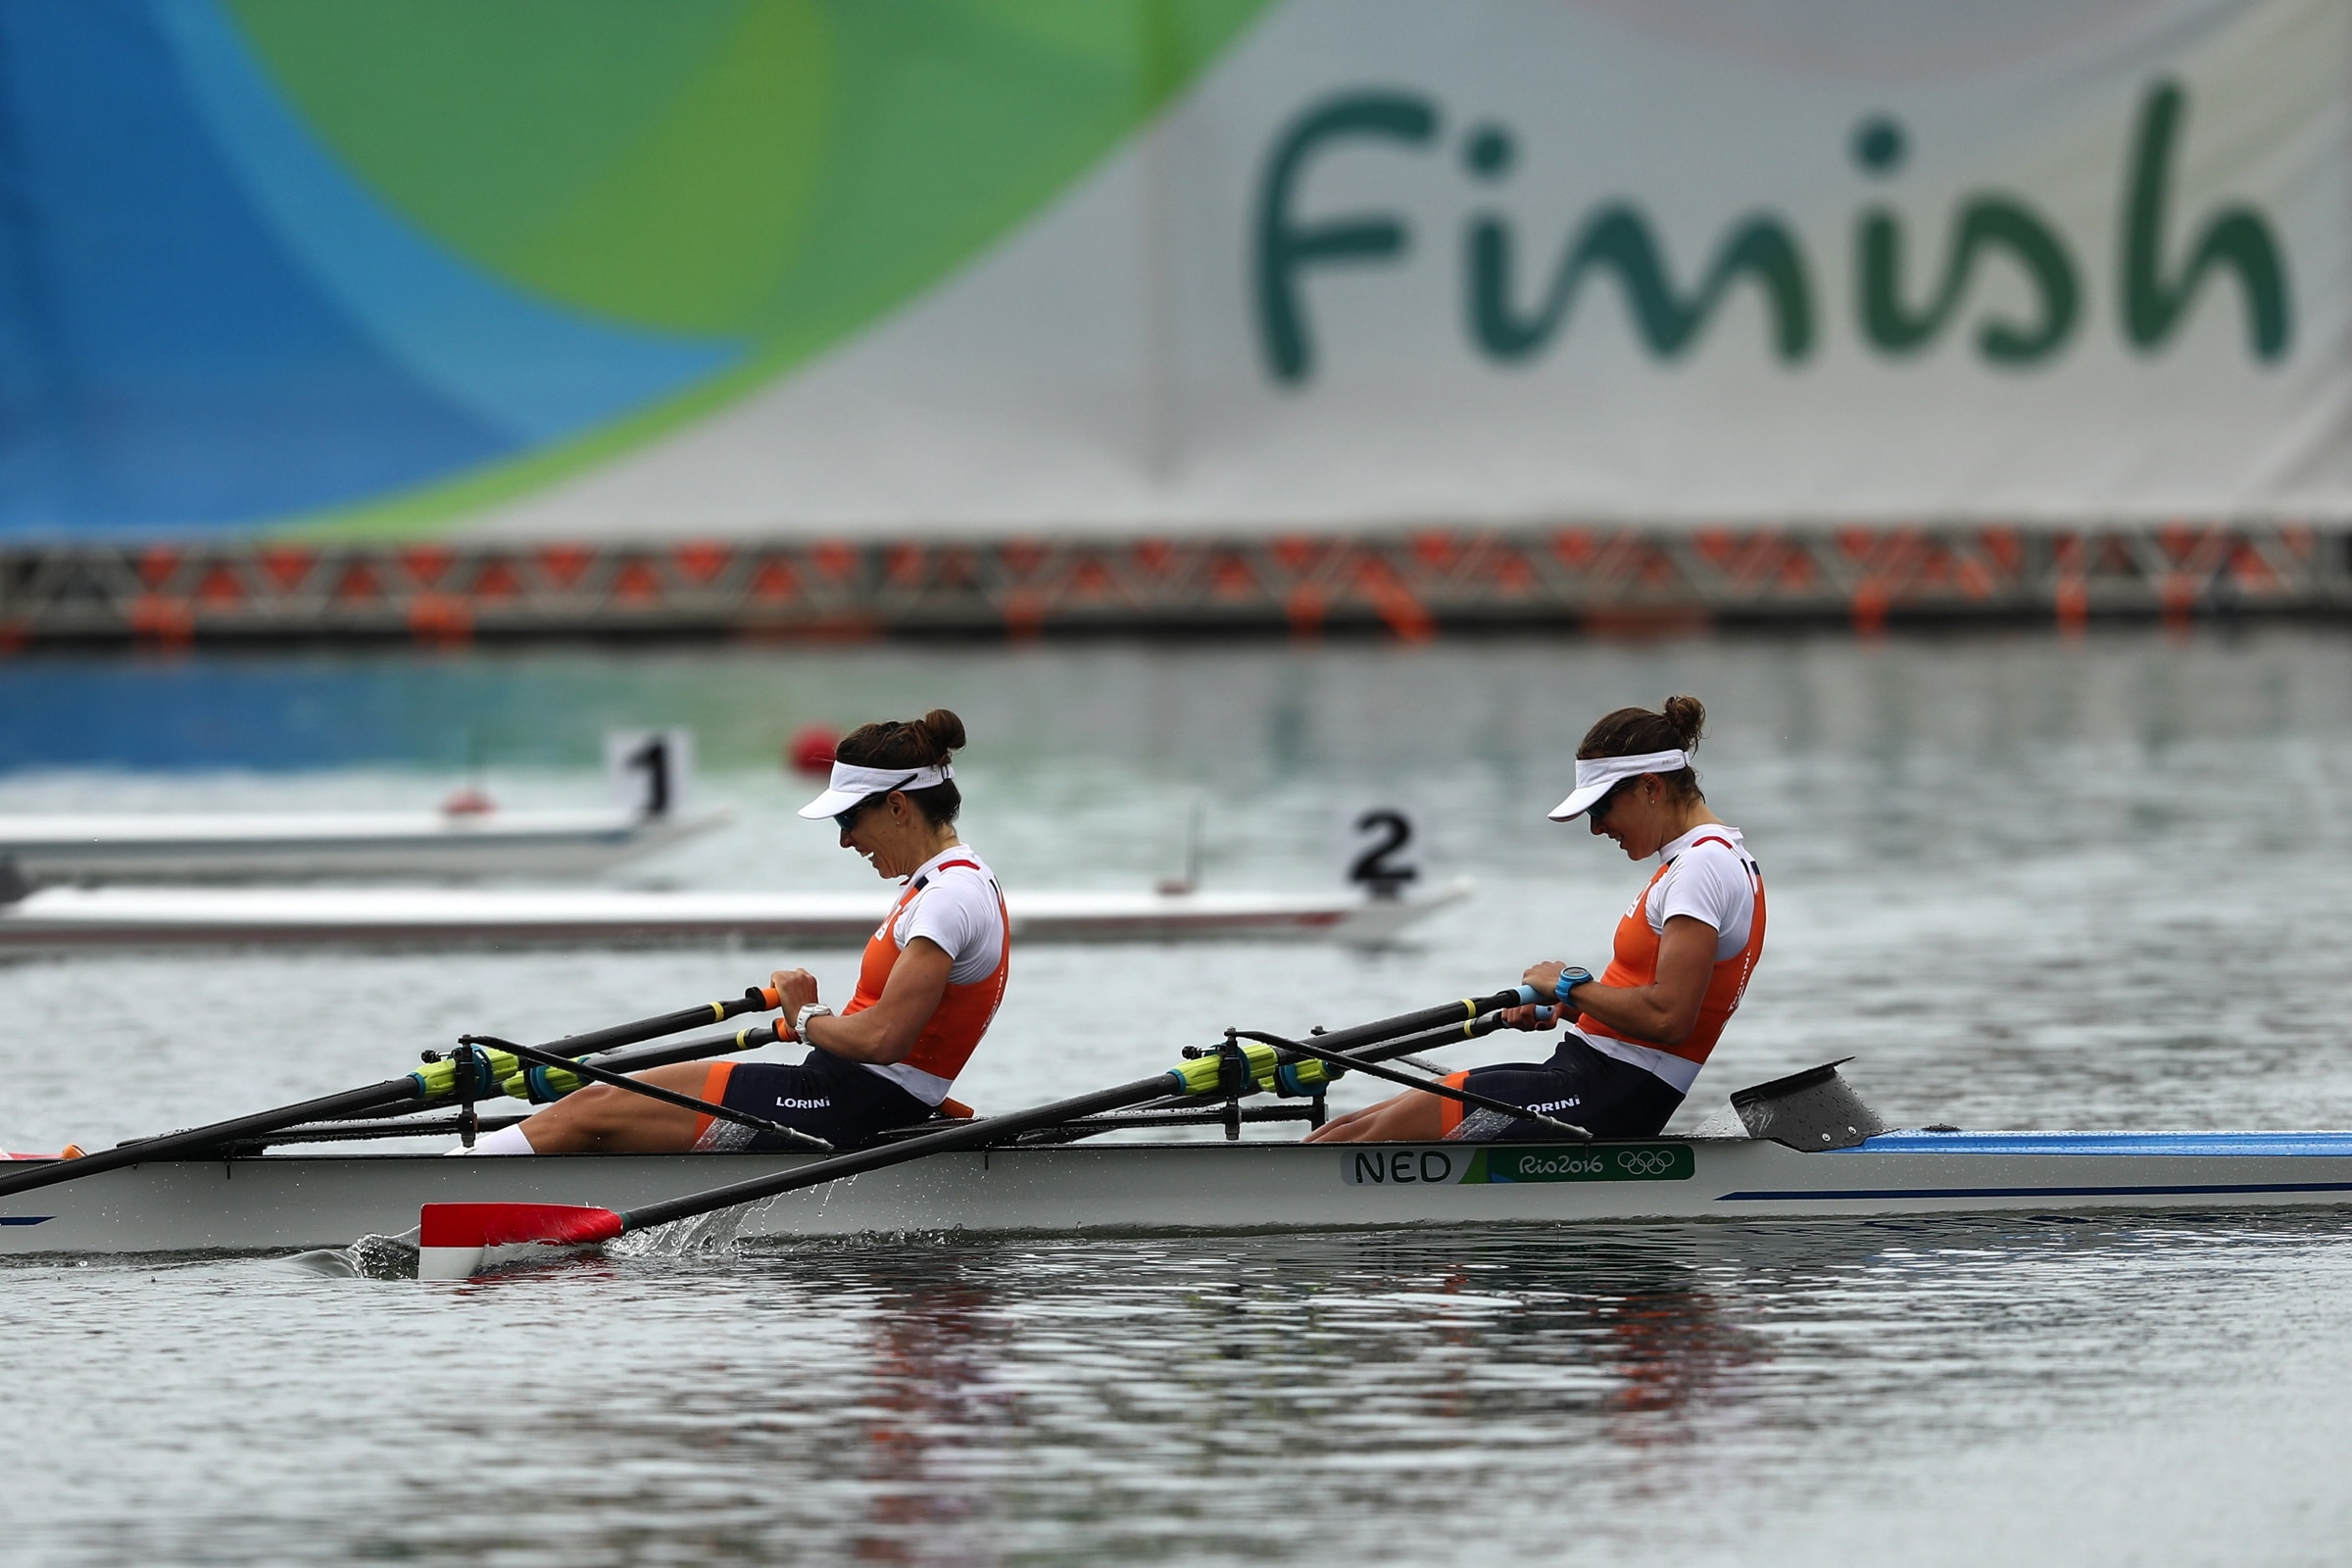 Rowing - Lightweight Women's Double Sculls